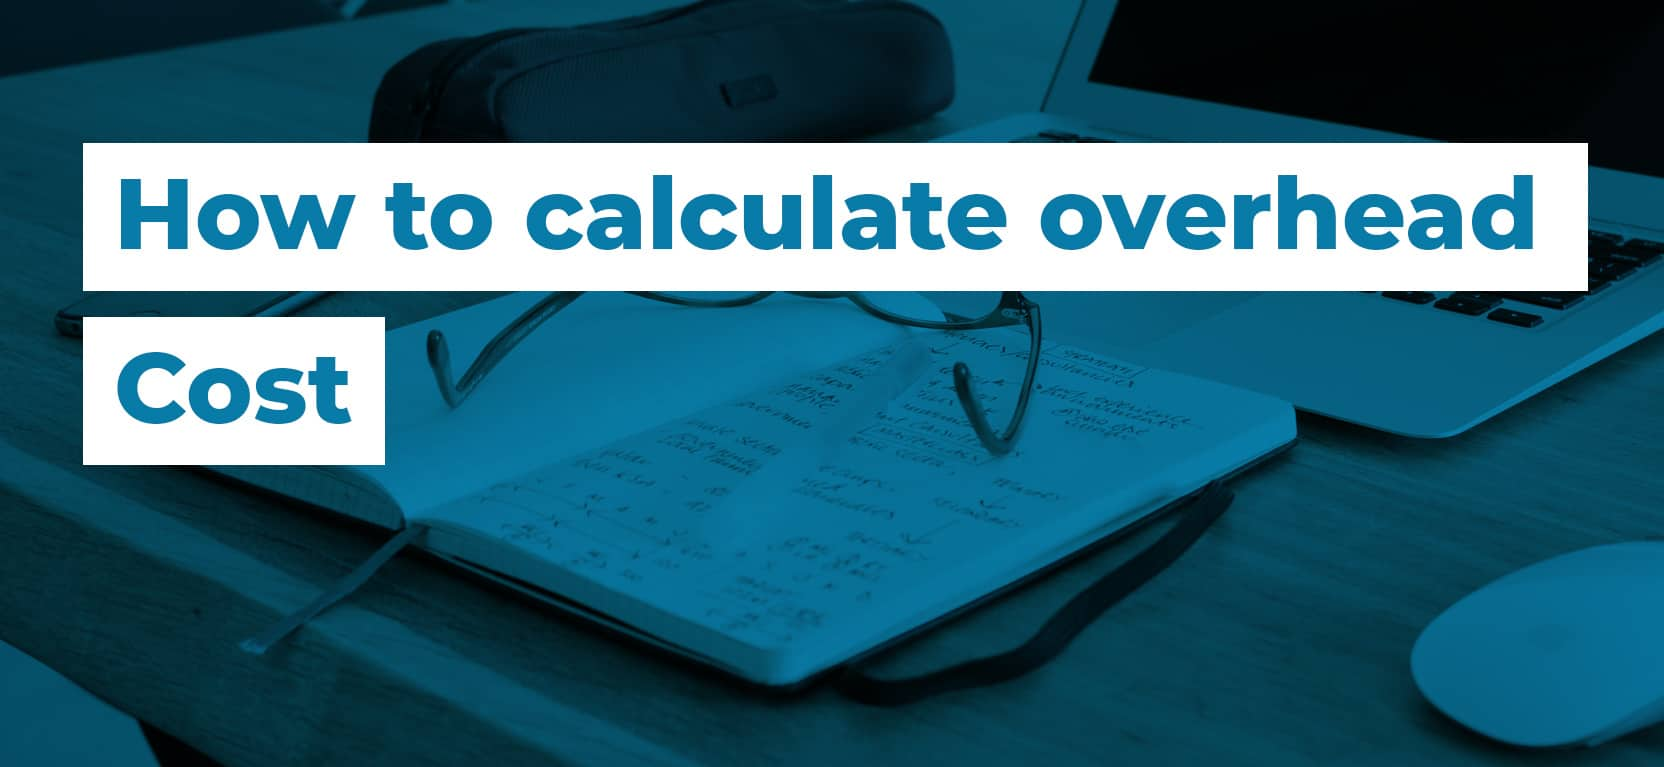 30 How to calculate overhead Cost3